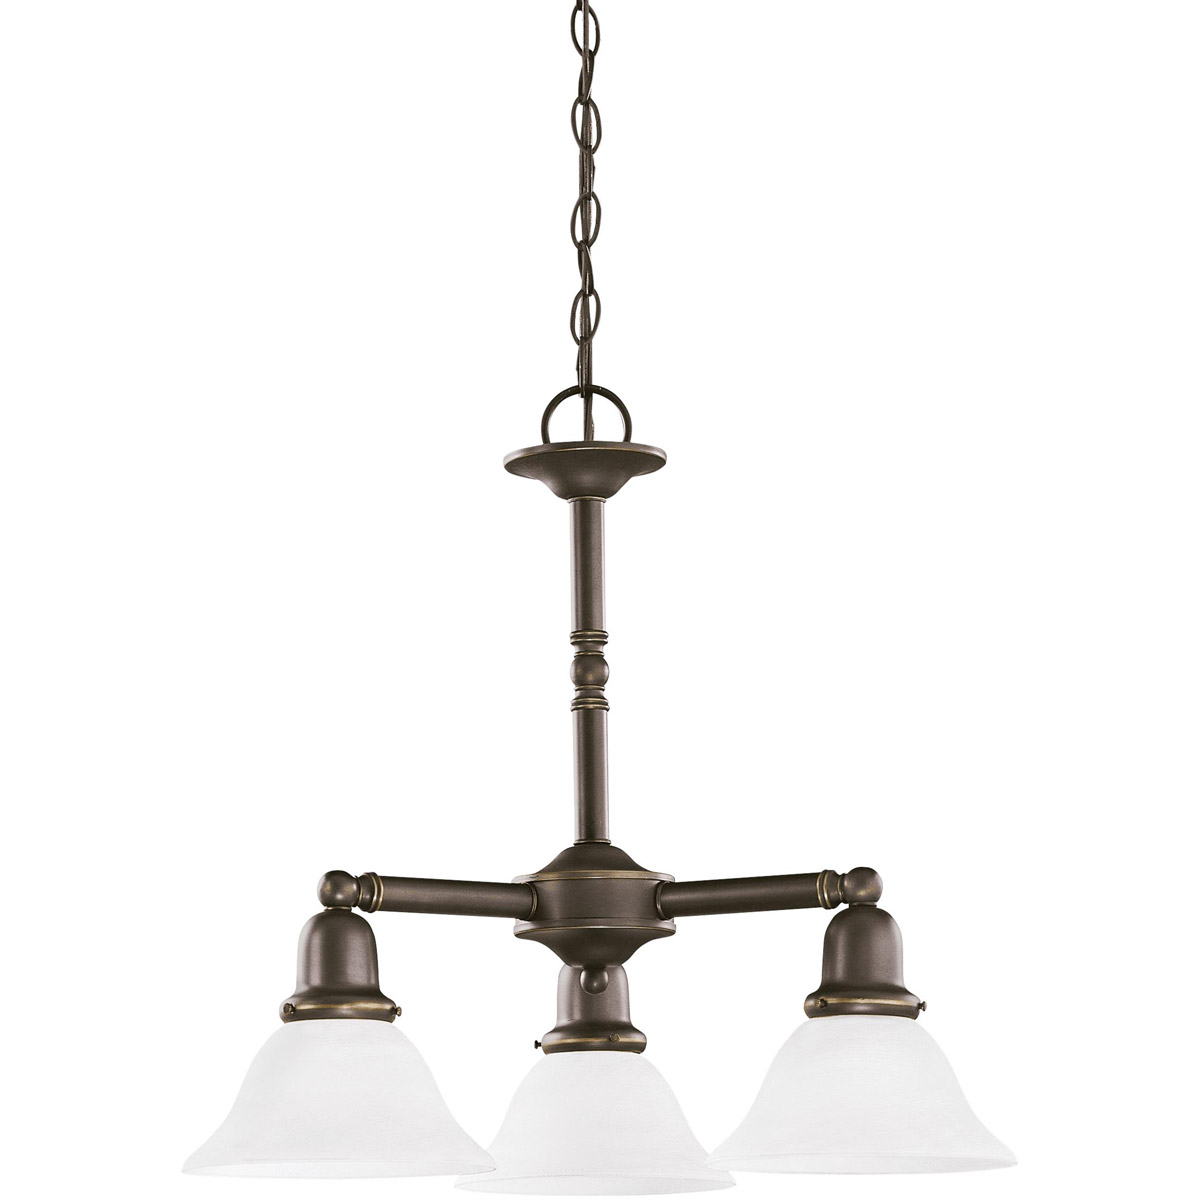 Sea Gull 39061BLE-782 Sussex 3 Light 22 inch Heirloom Bronze Chandelier Ceiling Light in Satin Etched Glass photo